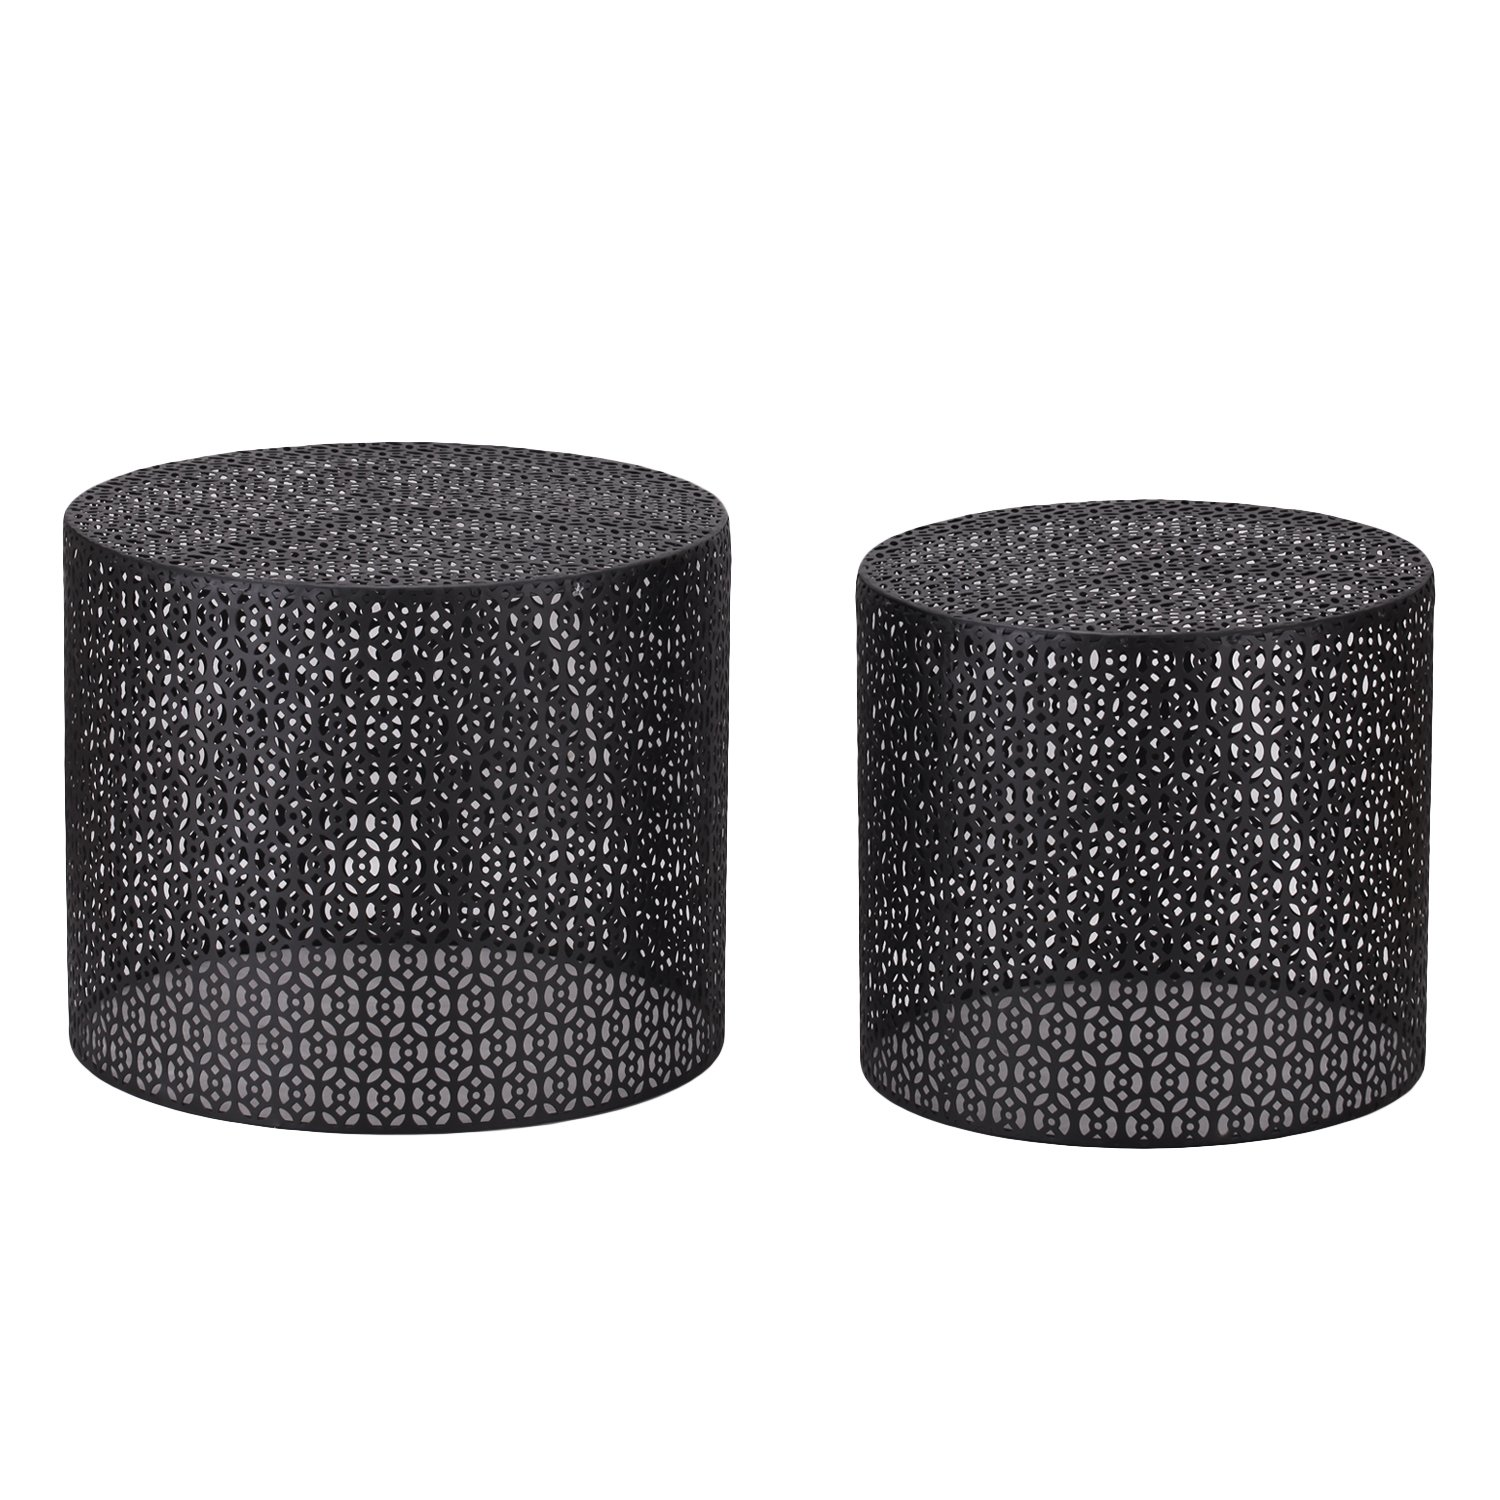 Adeco Round Nesting Side/End/Coffee Table, Black, Set of 2 by Adeco